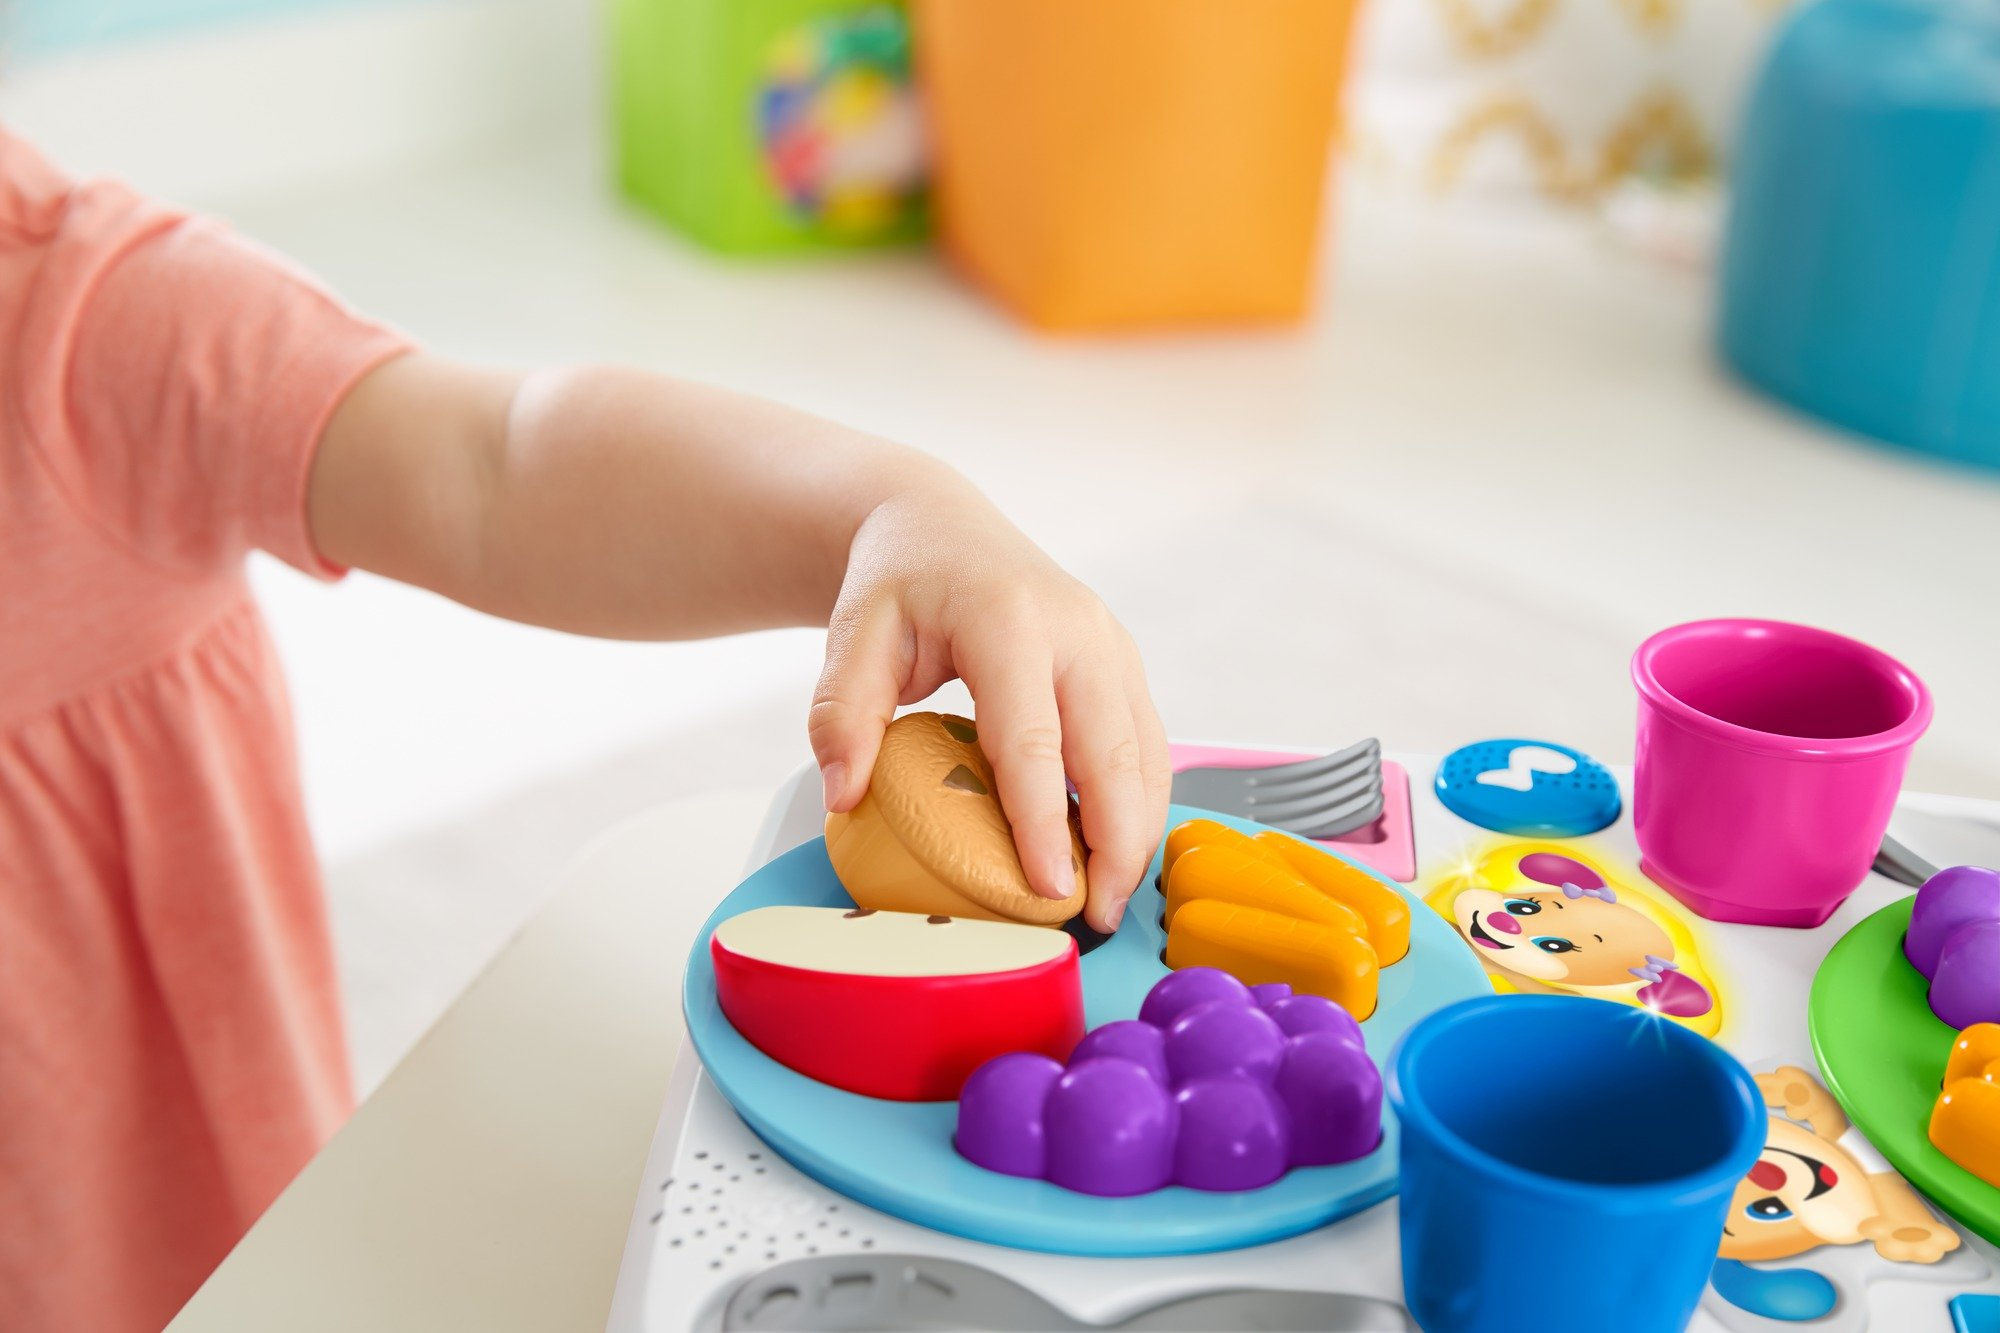 Fisher-Price FBM90 Say Please Snack Set, Laugh and Learn Toddler Kitchen and Food Role Play Toy, Suitable for 18 Months Plus by Fisher-Price (Image #3)